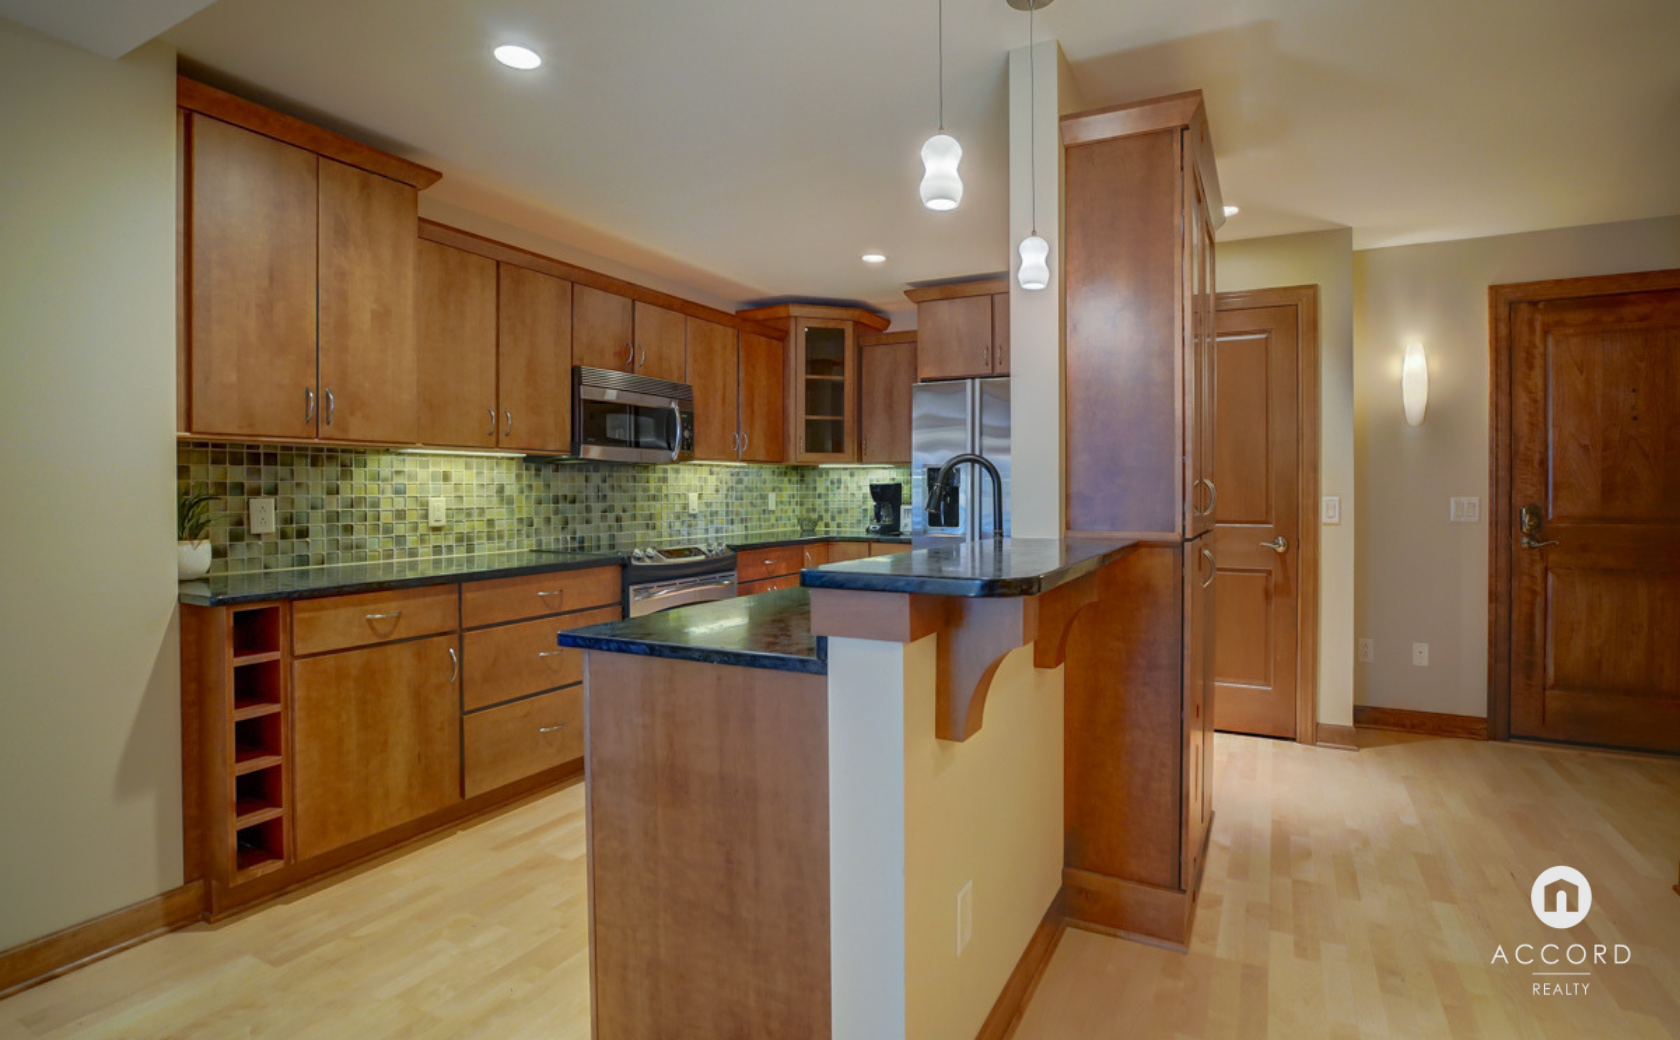 123 W Washington Ave #303 Madison, WI 53703 - Kitchen6.png